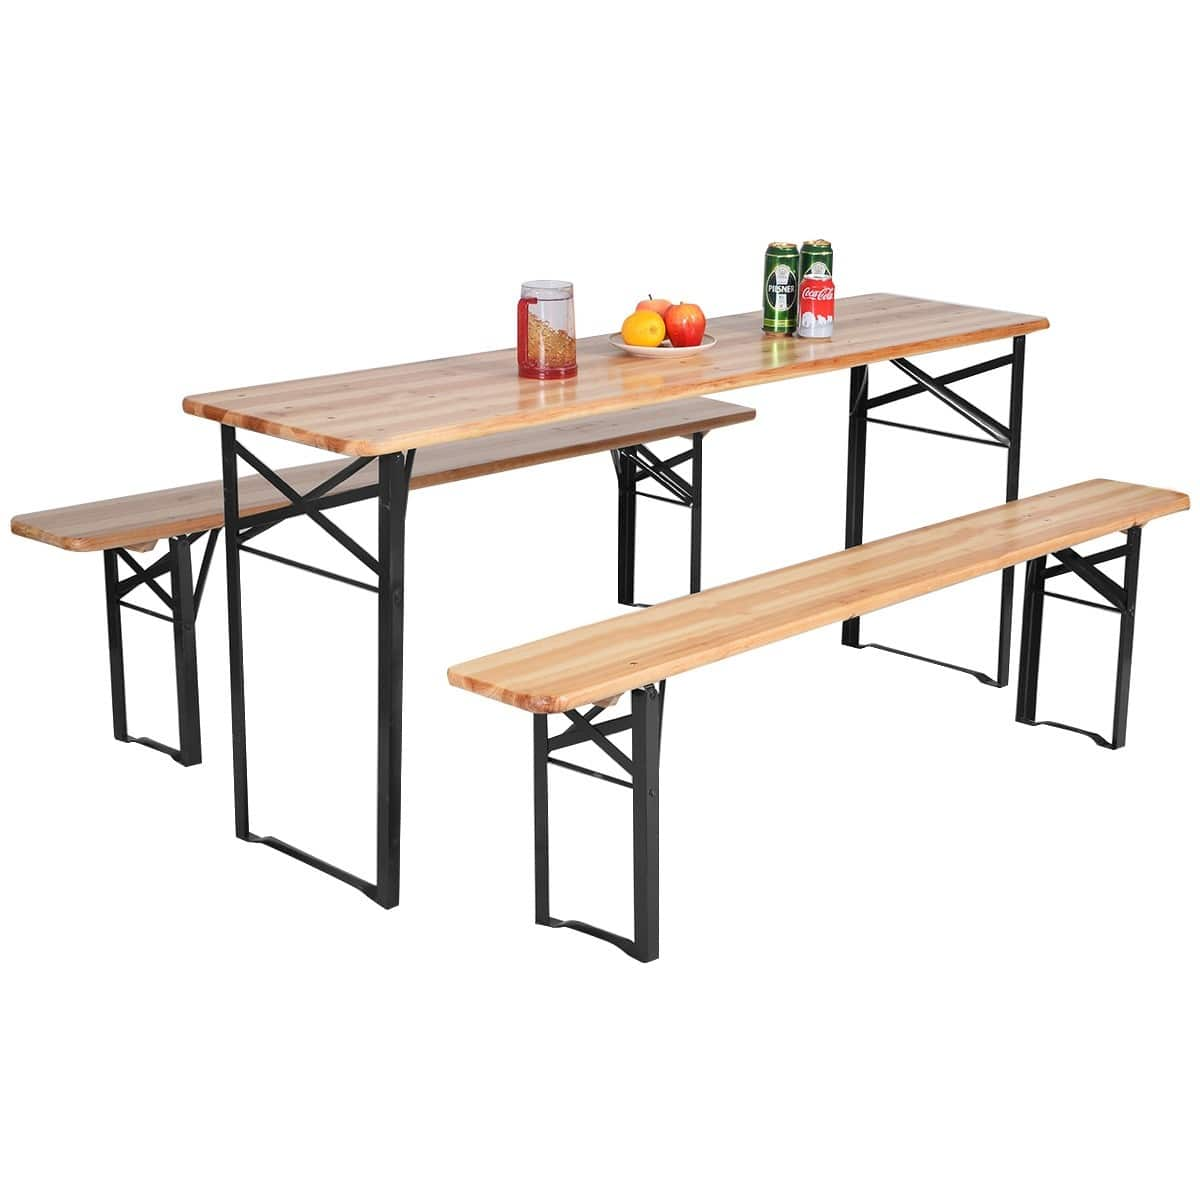 Outstanding Costway 3 Pcs Folding Wooden Picnic Table Bench Set Squirreltailoven Fun Painted Chair Ideas Images Squirreltailovenorg